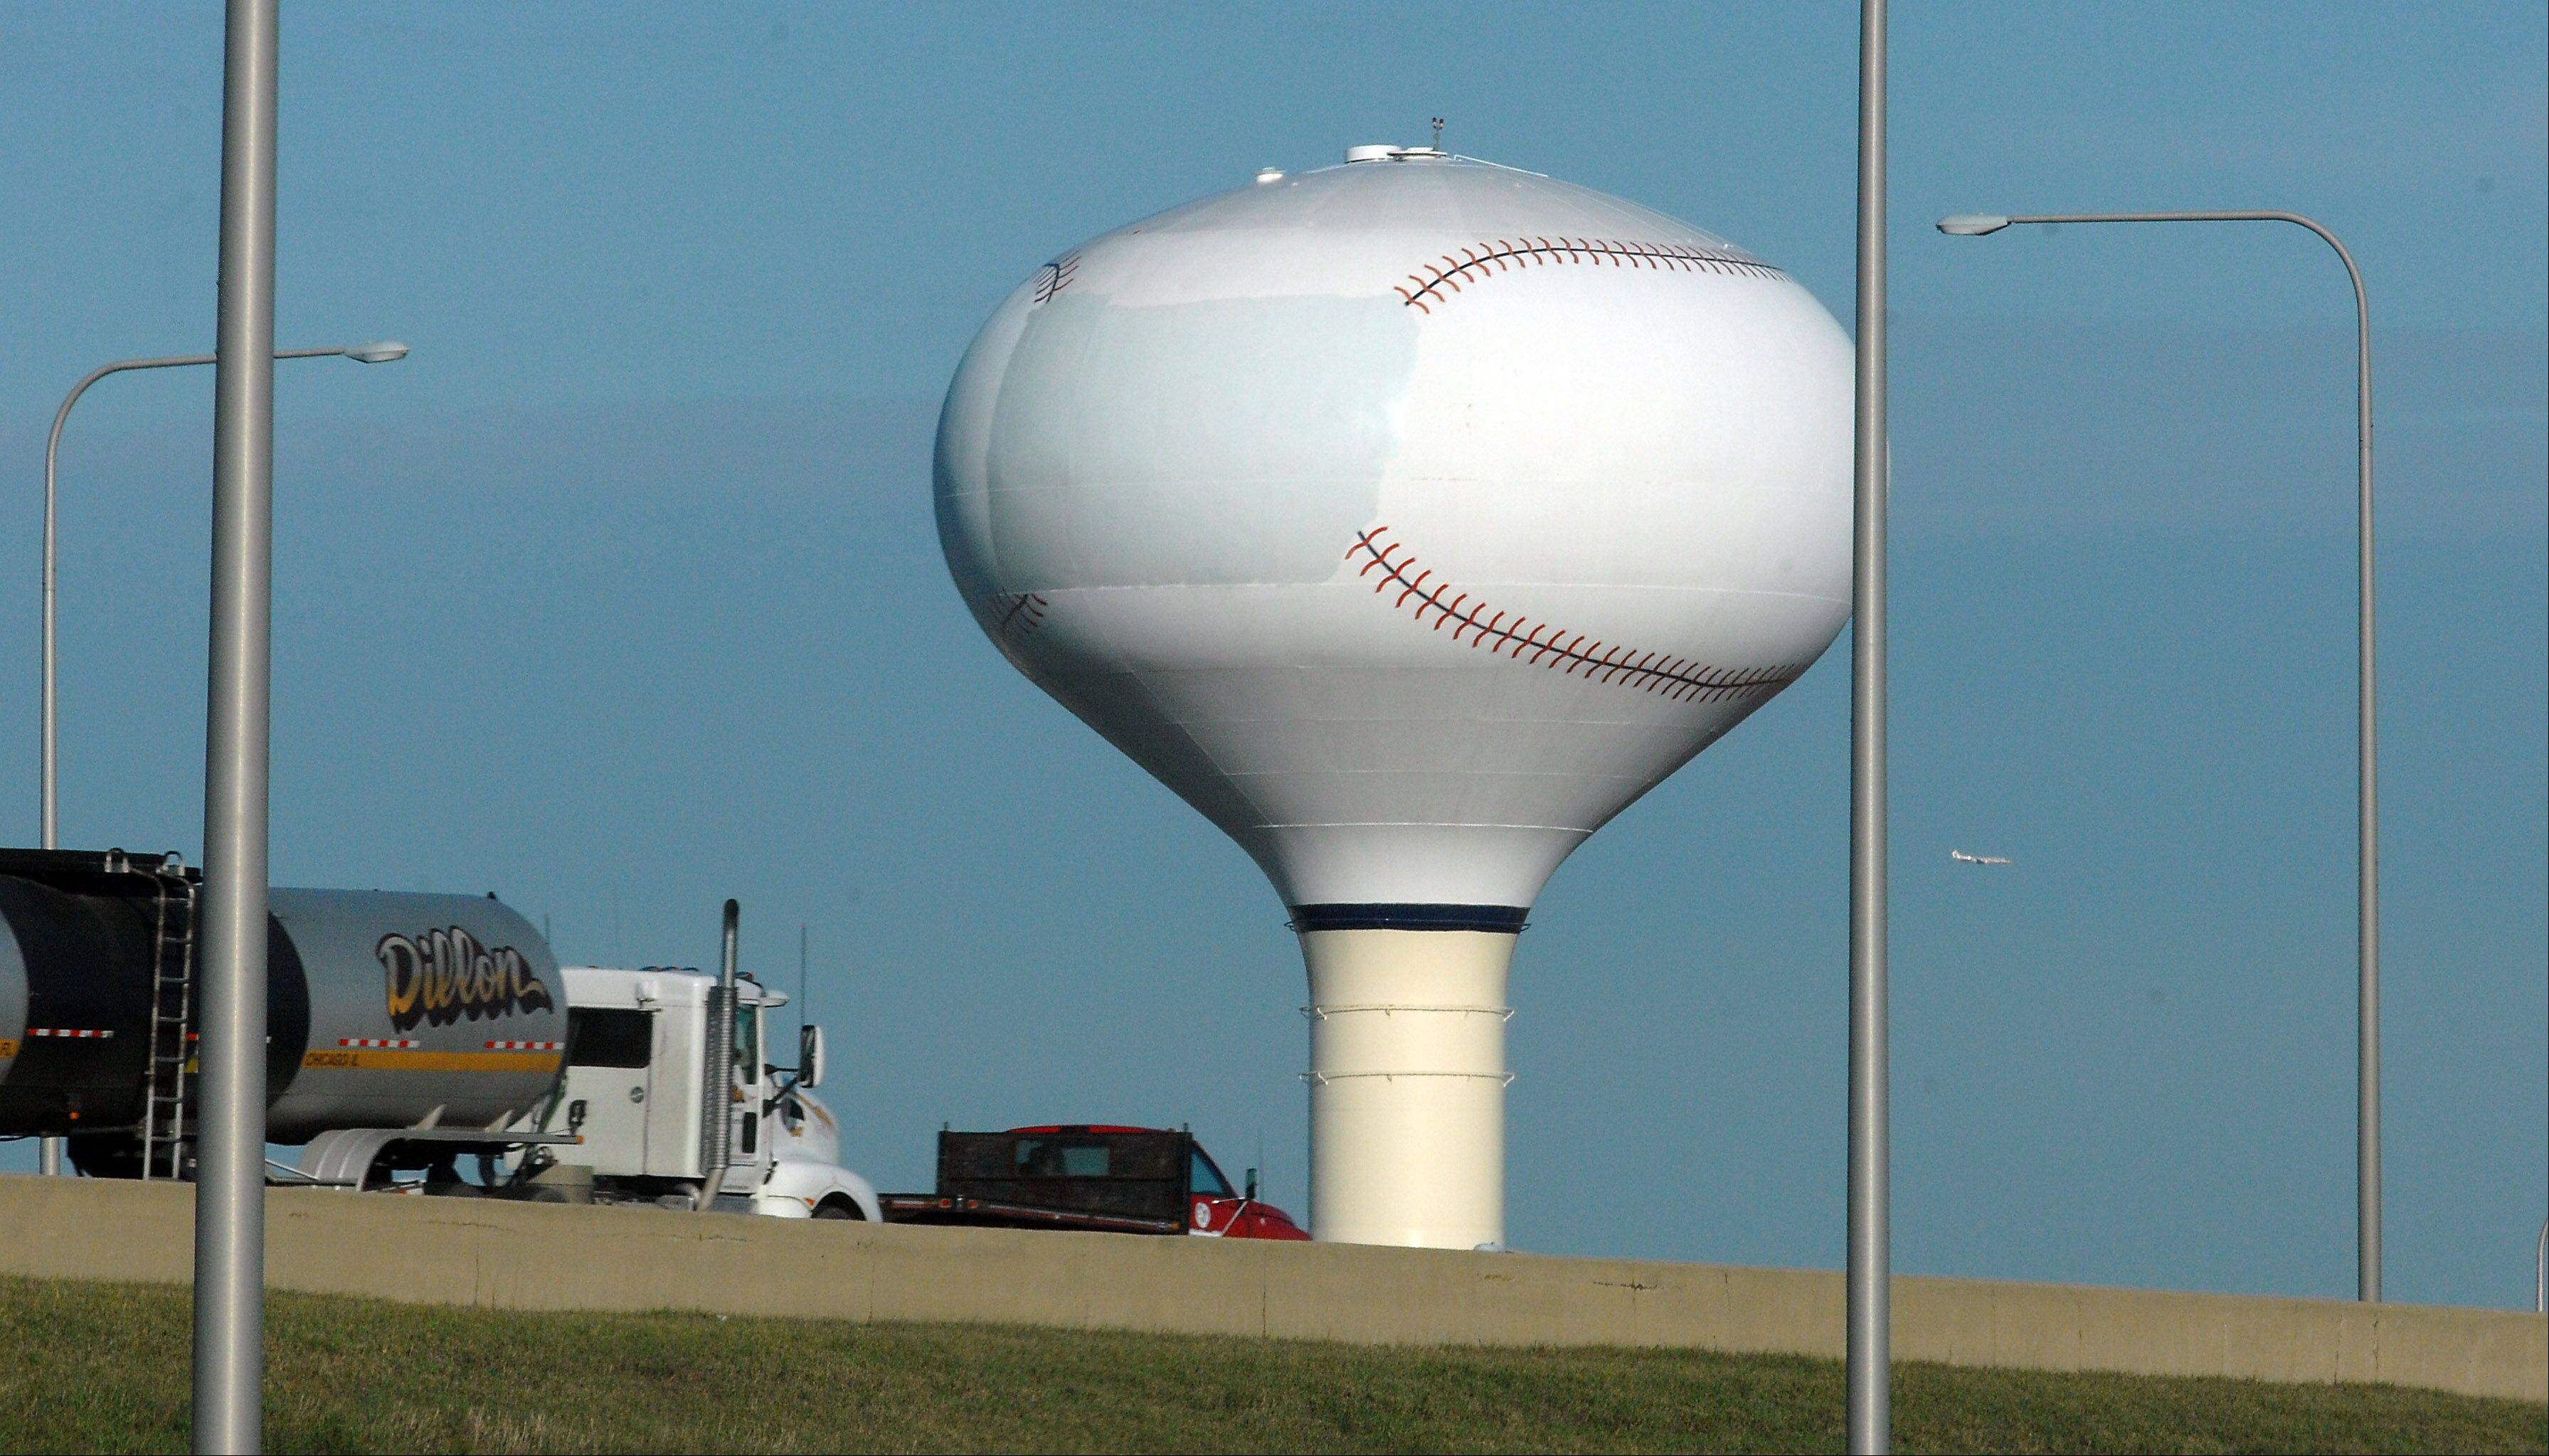 The Schaumburg Flyers name has been erased from the Schaumburg water tower near the baseball stadium and likely will be replaced with the Boomers name in the spring.